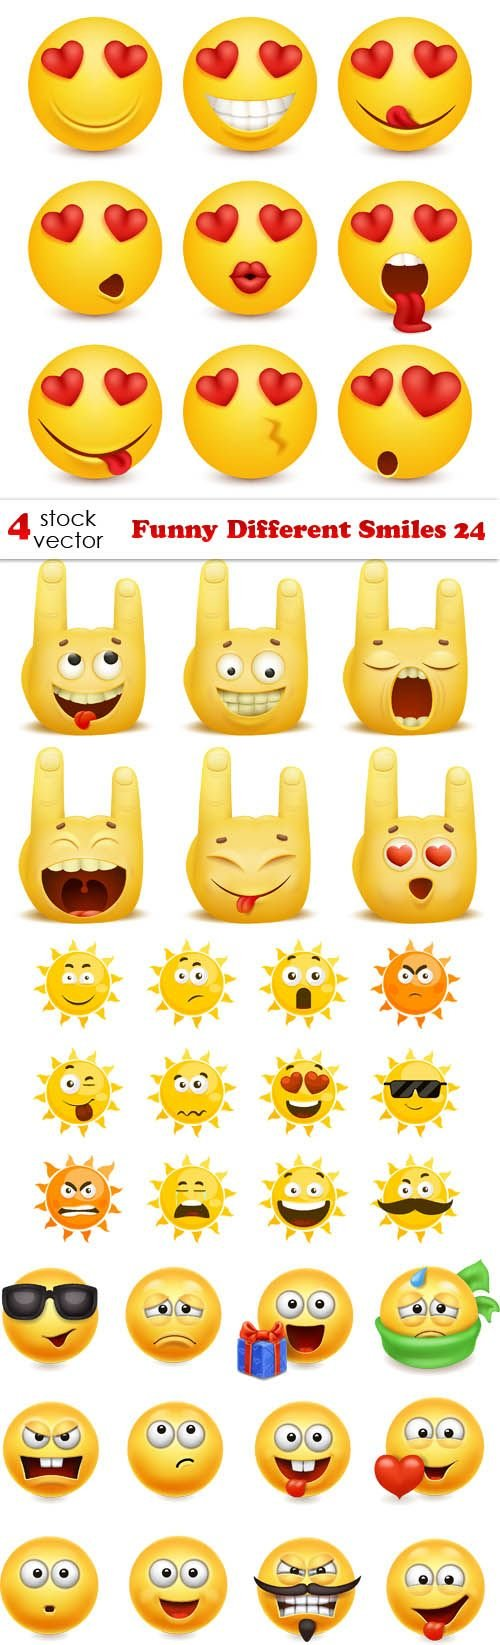 Vectors - Funny Different Smiles 24